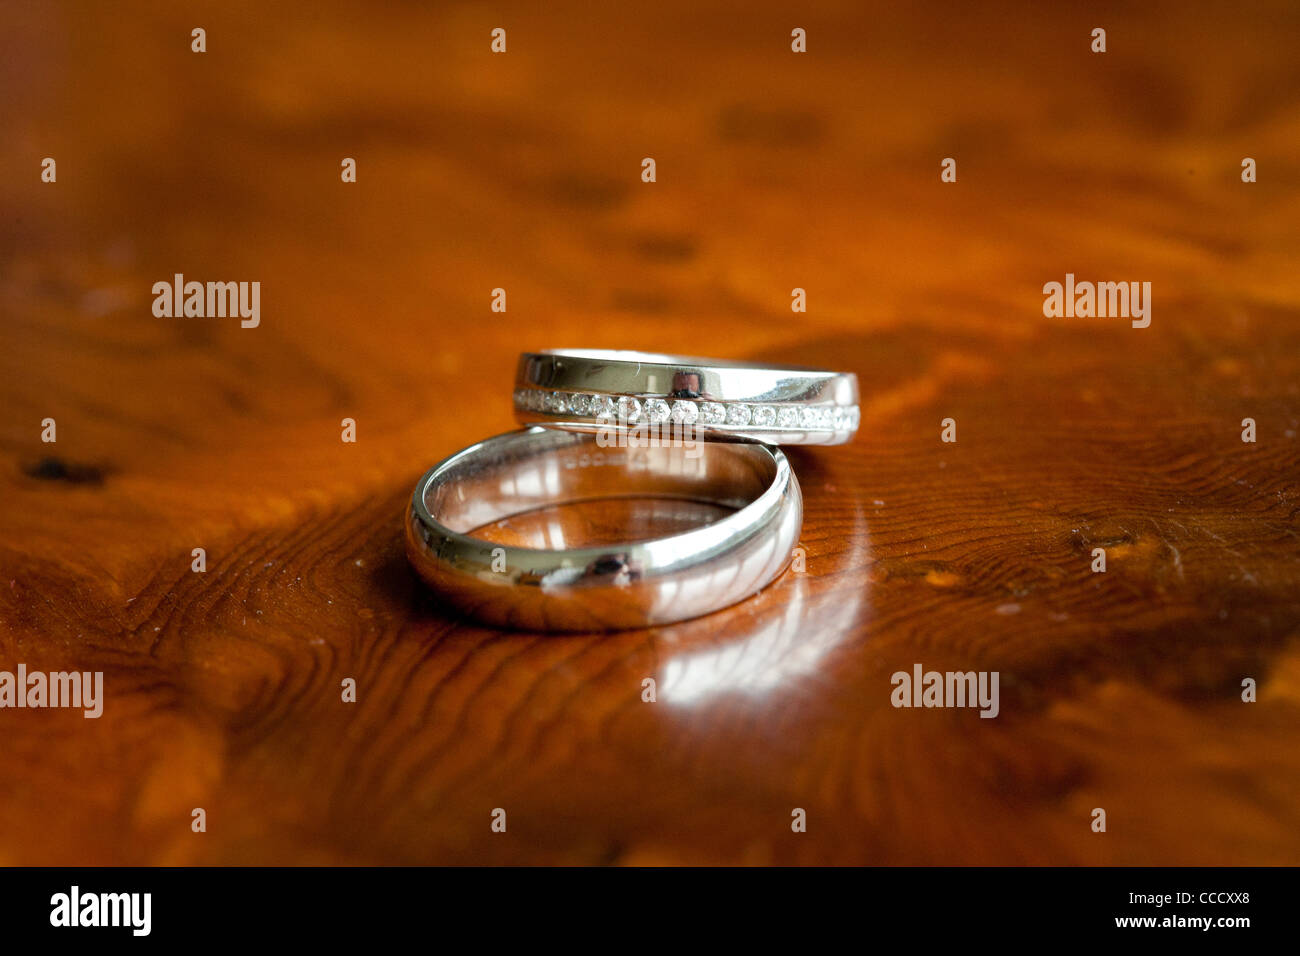 Wedding Rings - Stock Image